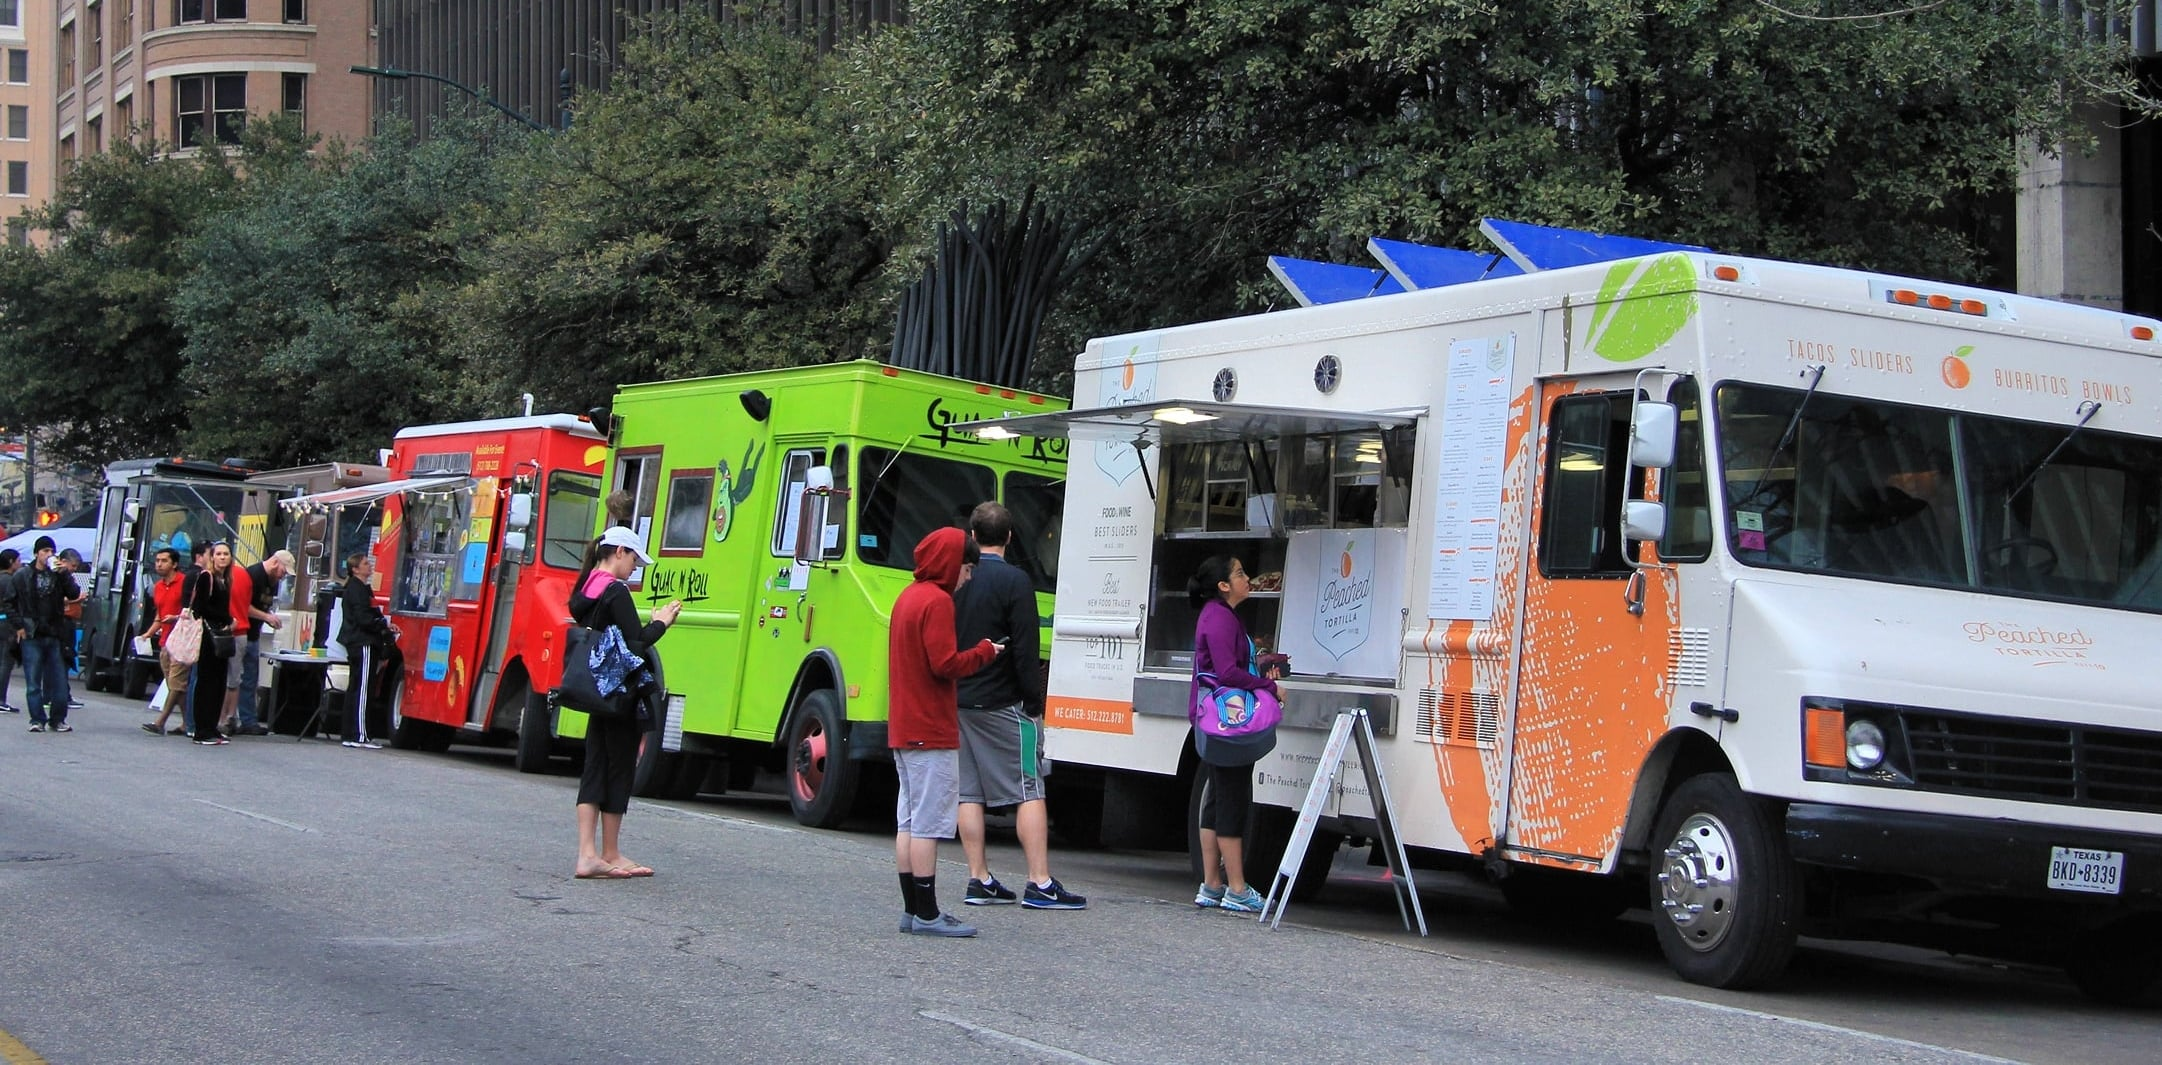 Top 10 Food Trucks in the U.S.